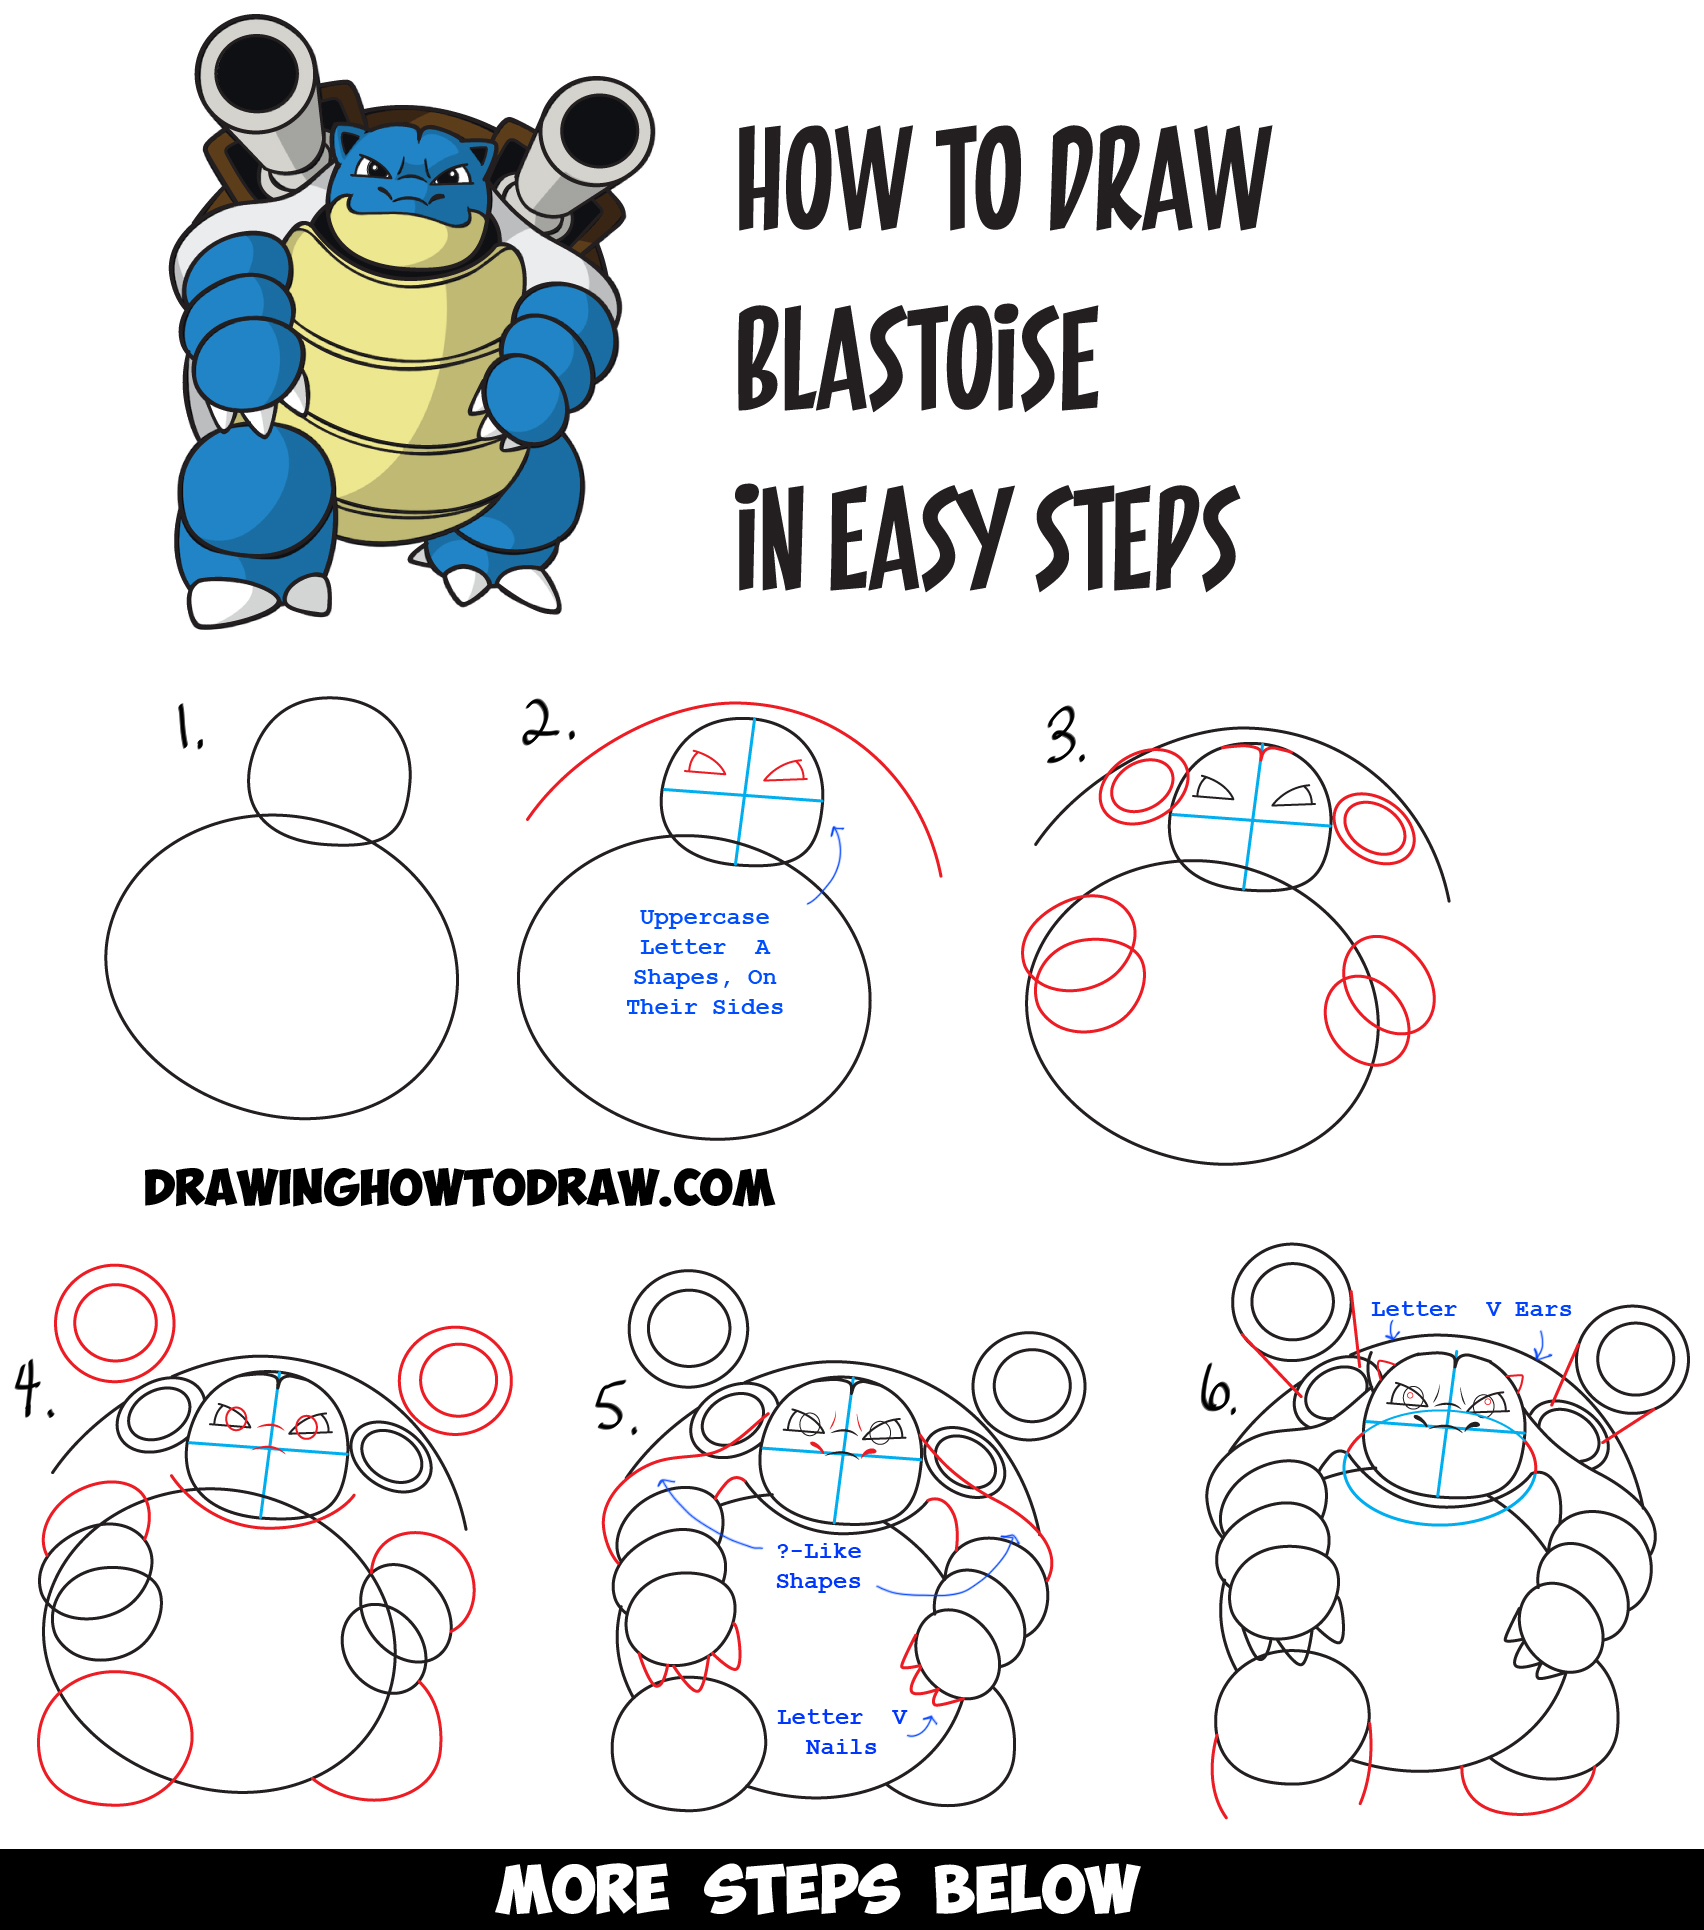 How to draw blastoise from pokemon easy drawing tutorial for Learn drawing online step by step